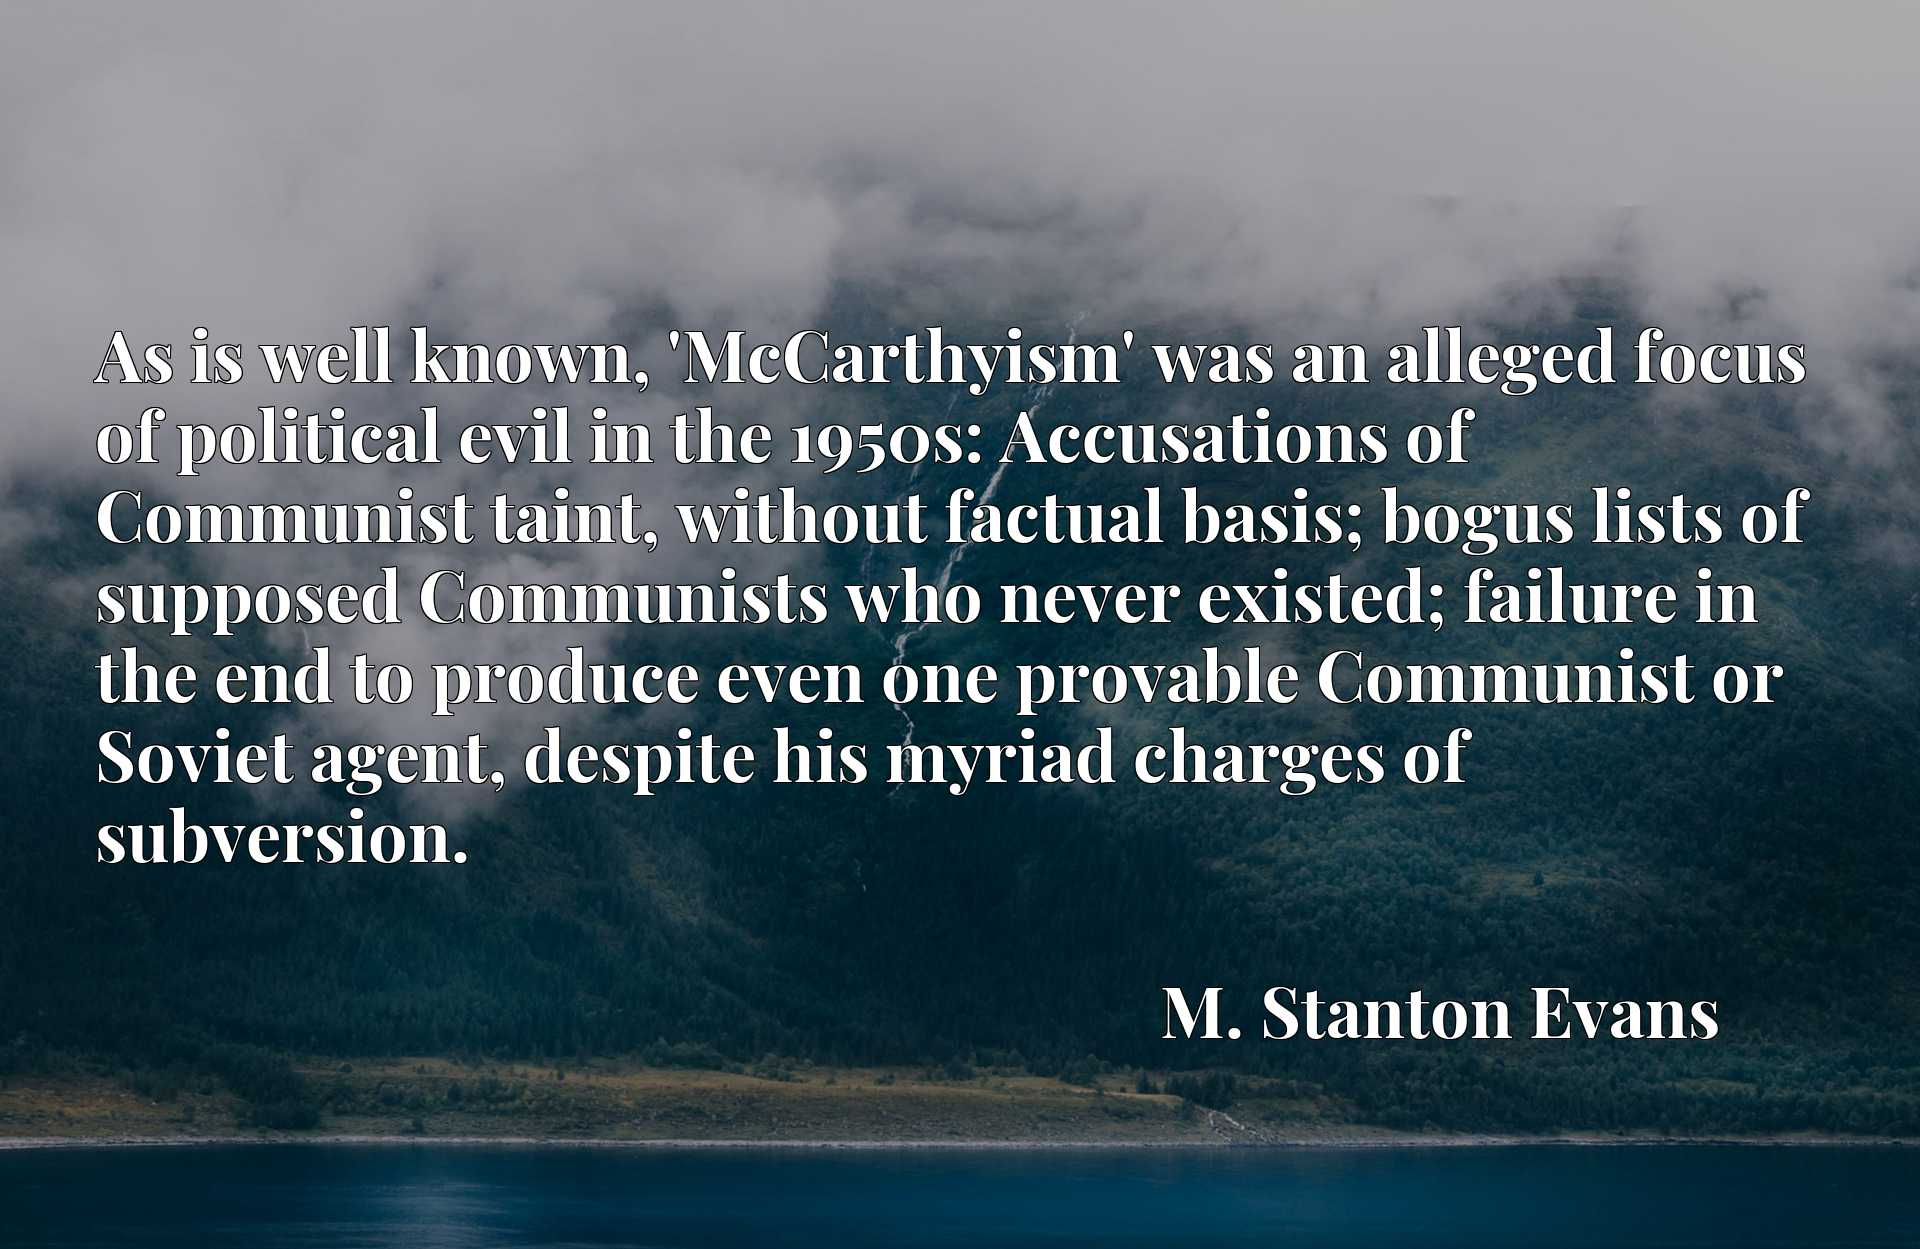 As is well known, 'McCarthyism' was an alleged focus of political evil in the 1950s: Accusations of Communist taint, without factual basis; bogus lists of supposed Communists who never existed; failure in the end to produce even one provable Communist or Soviet agent, despite his myriad charges of subversion.